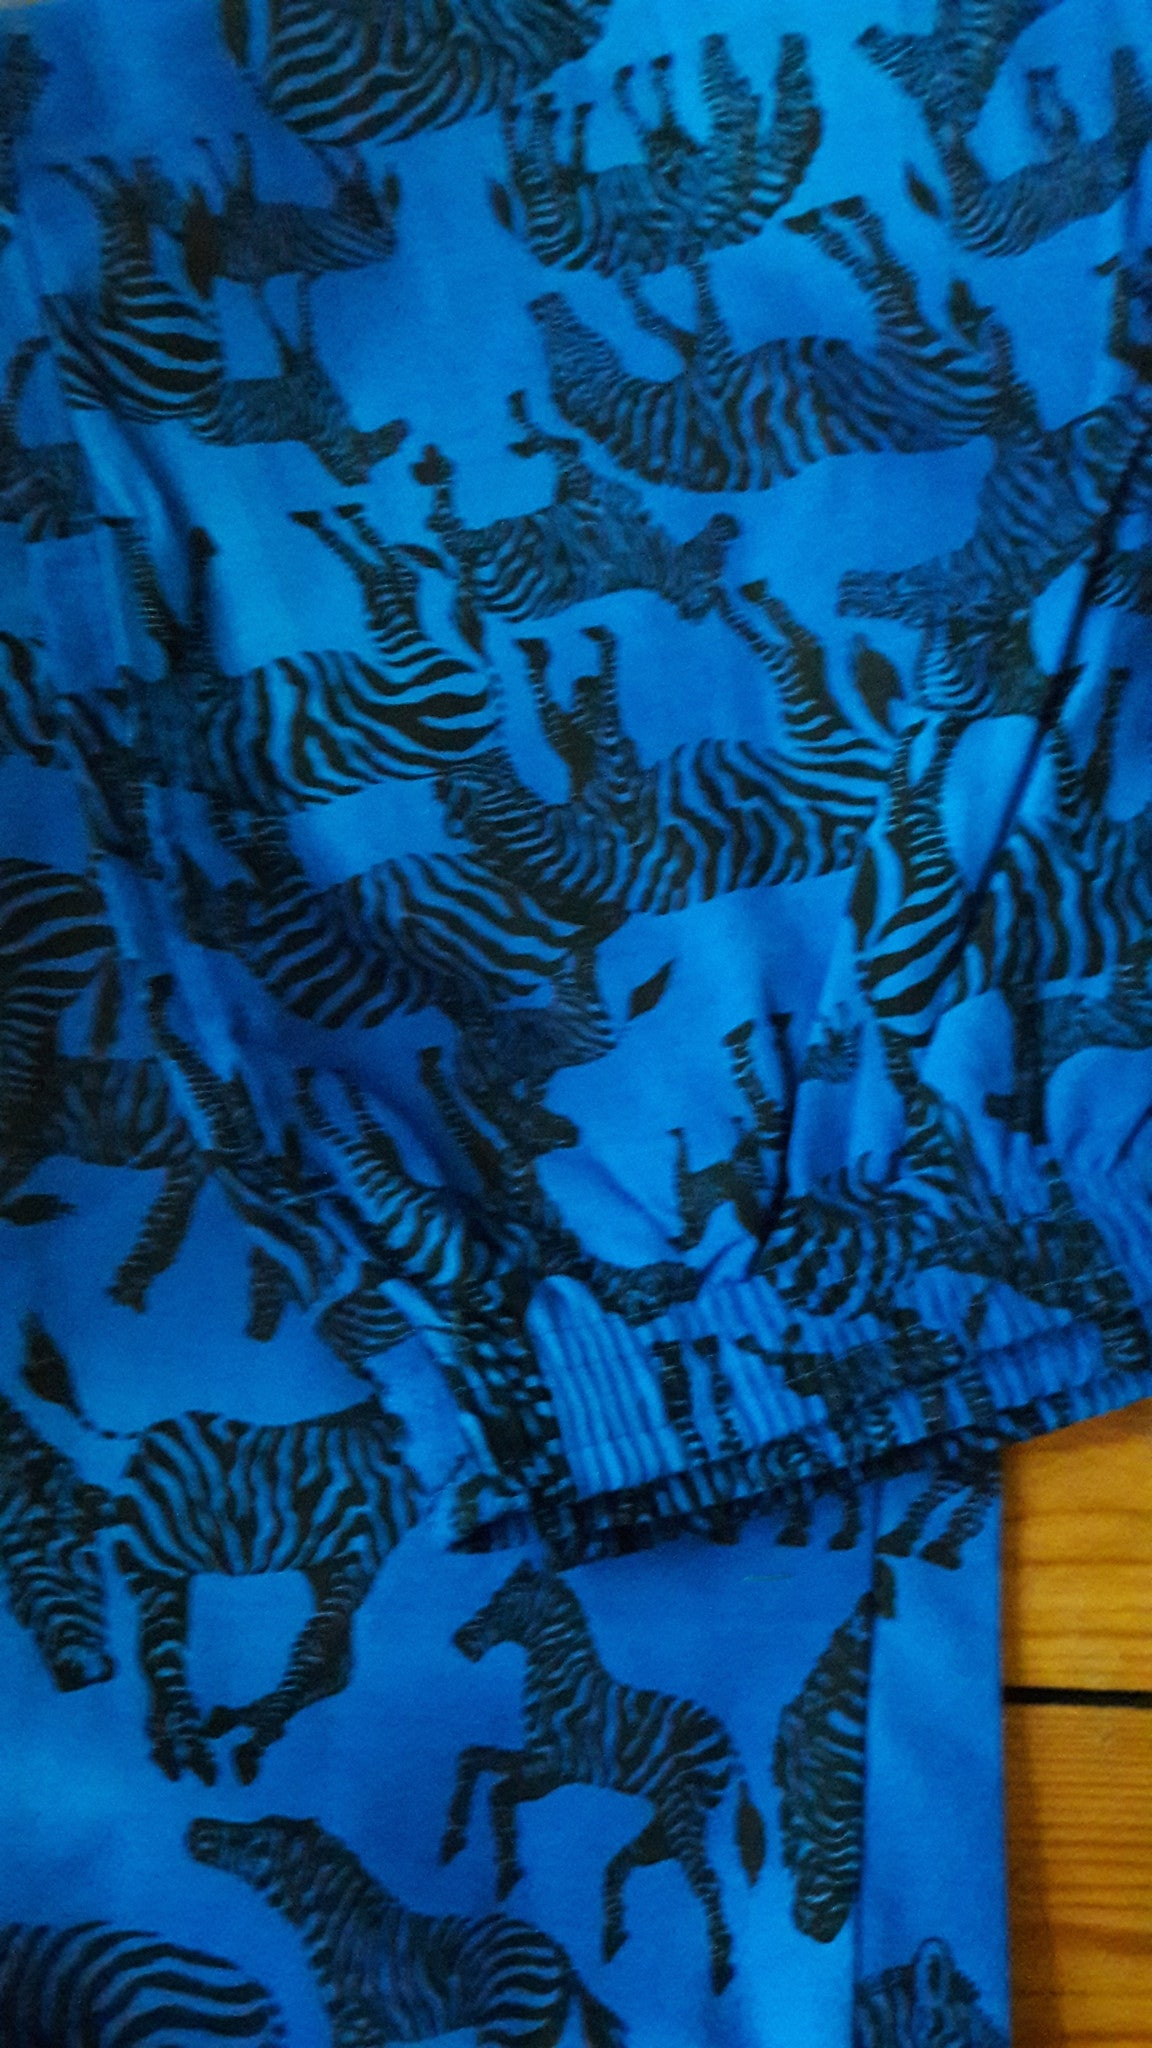 Verts - Zebras Print - 100% Cotton Trousers